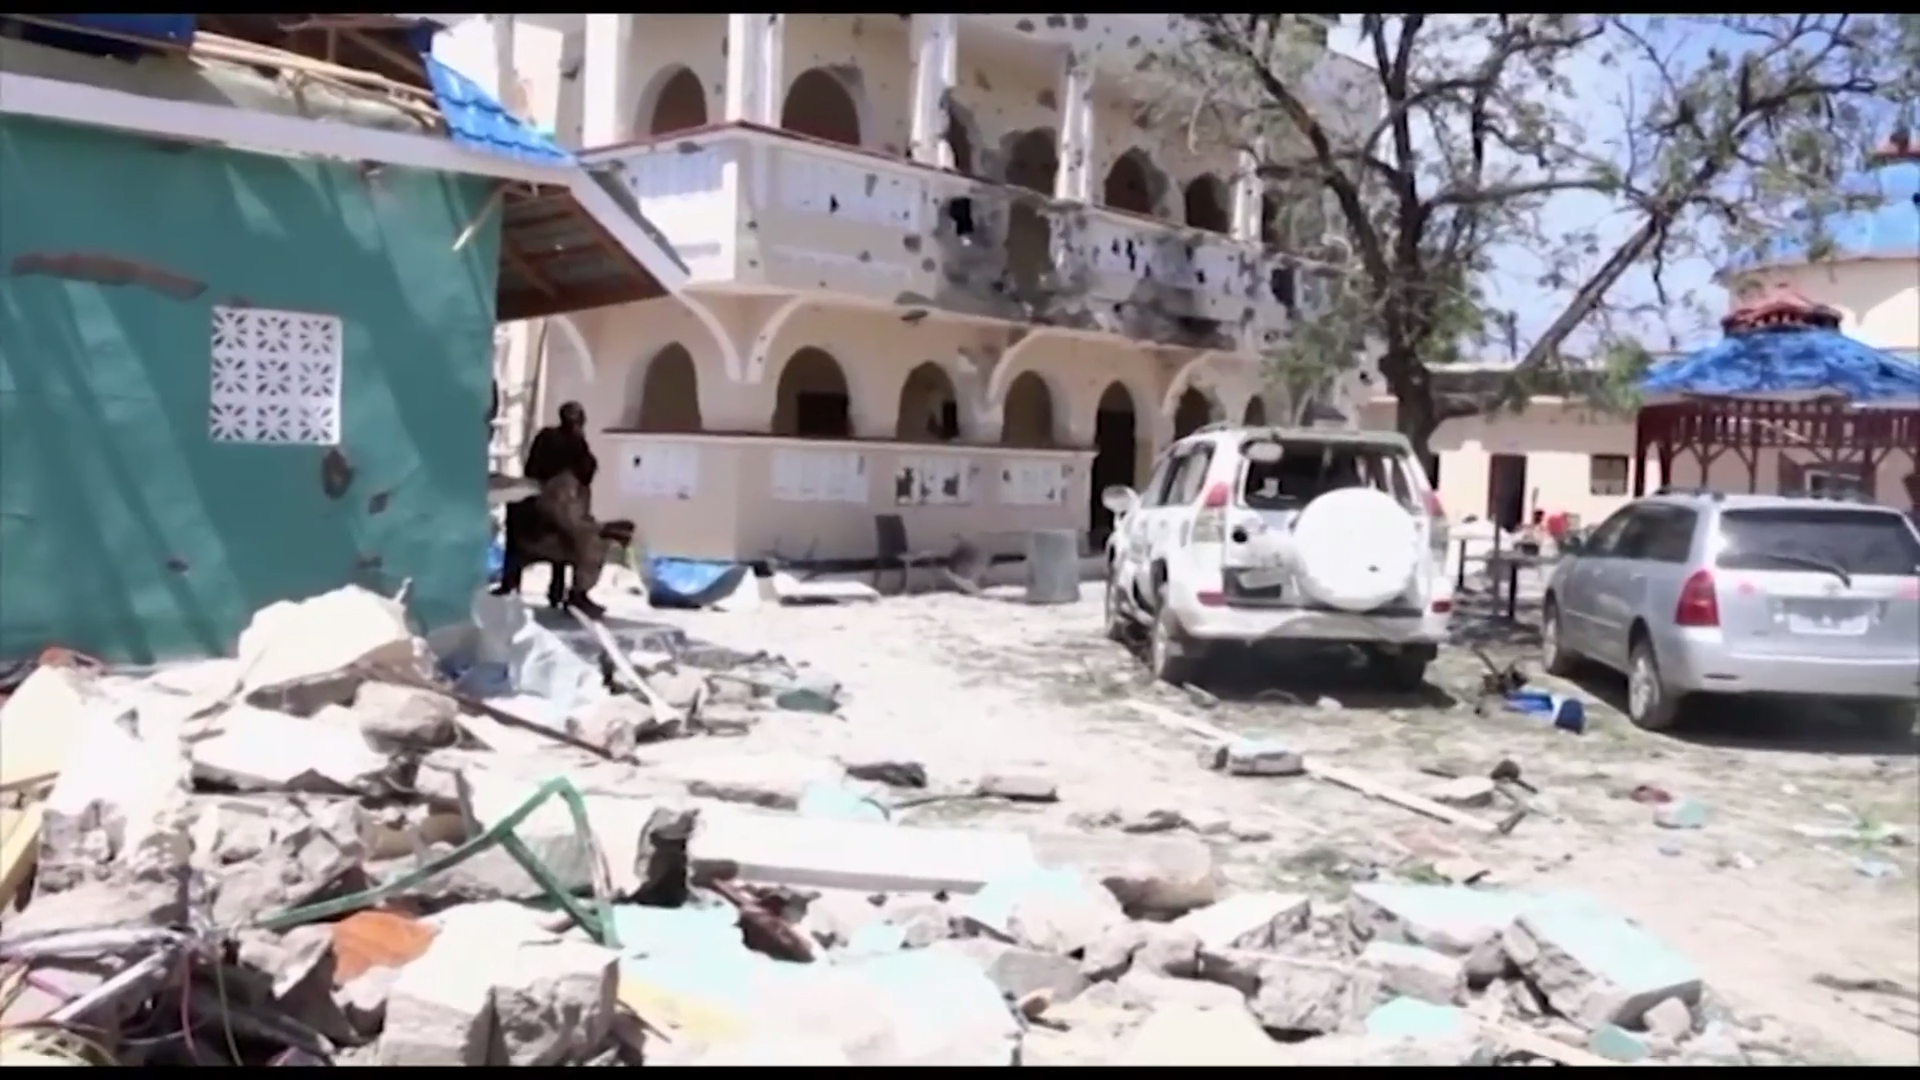 At least 26 killed in attack on Somalia hotel